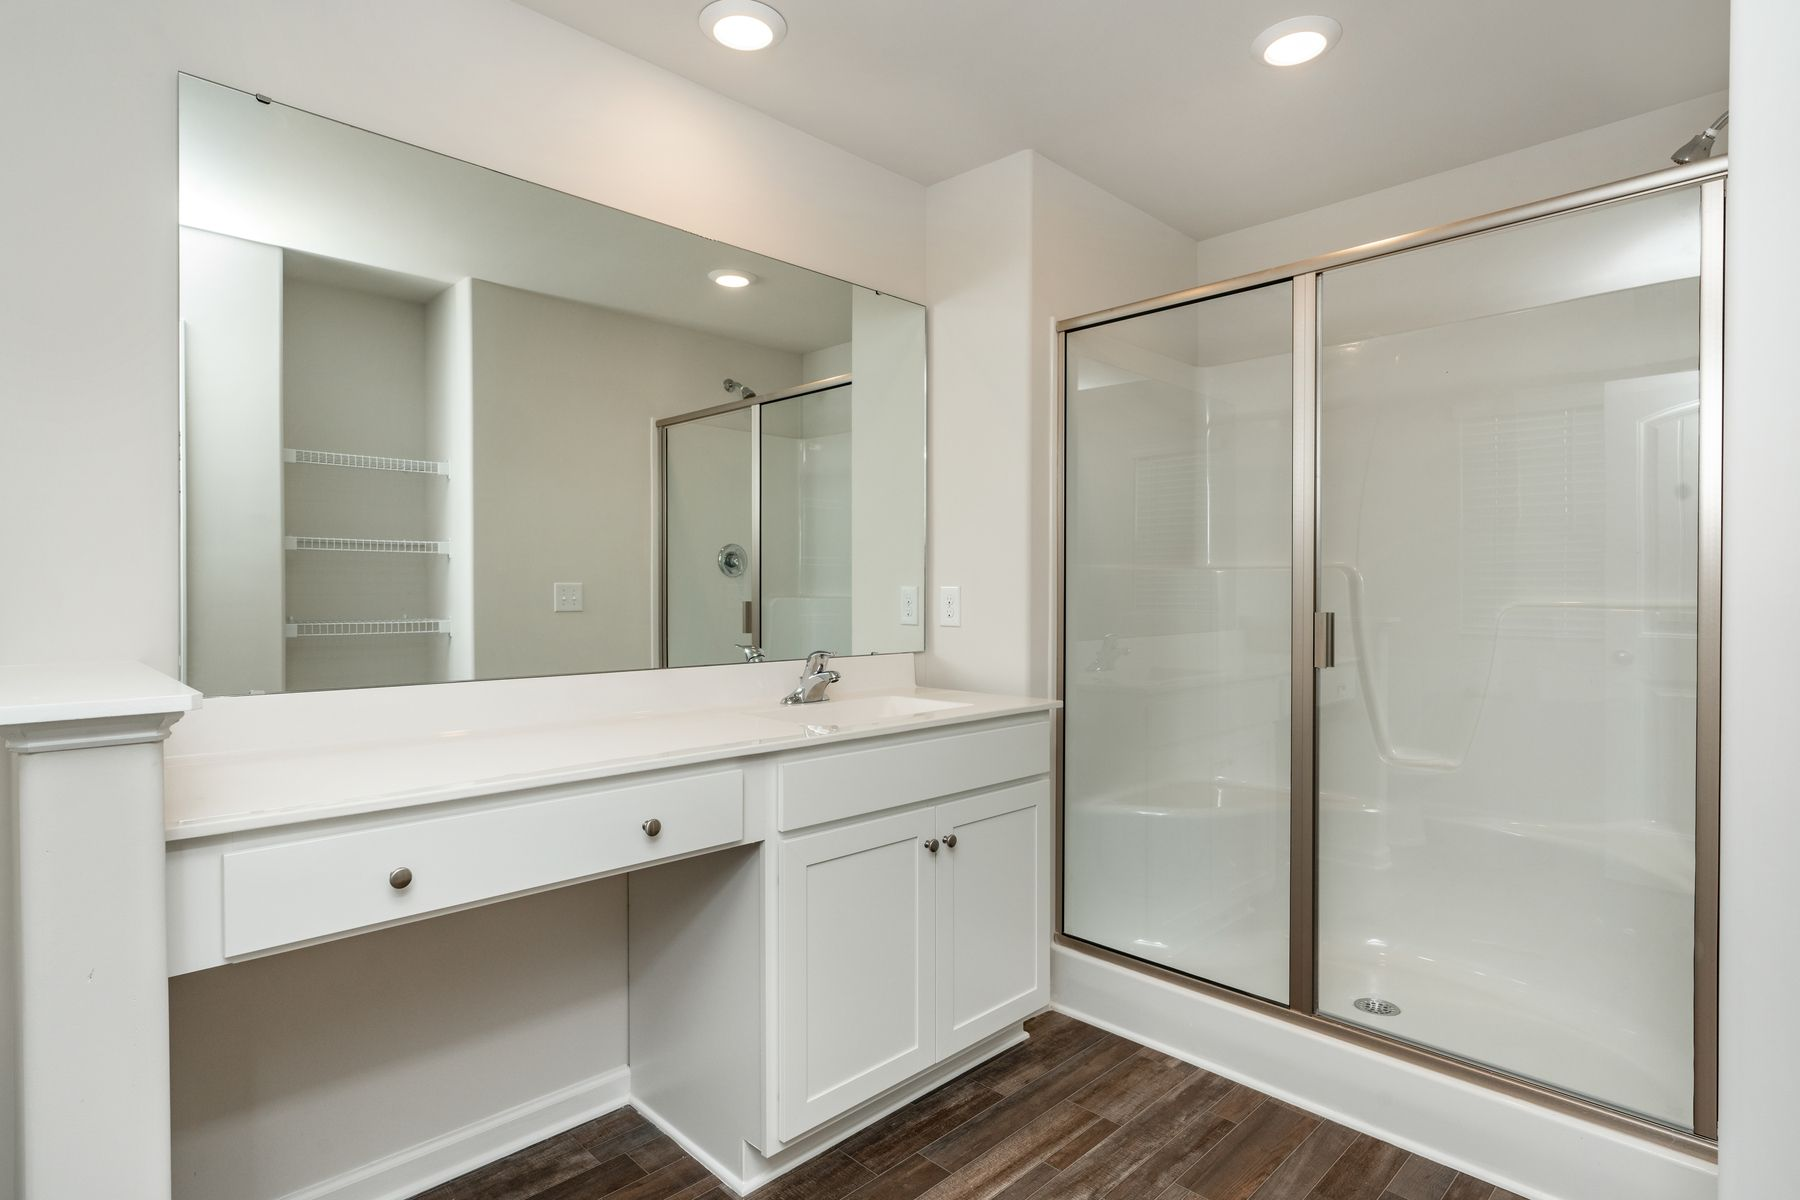 Bathroom featured in the Burke By LGI Homes in Jacksonville, NC